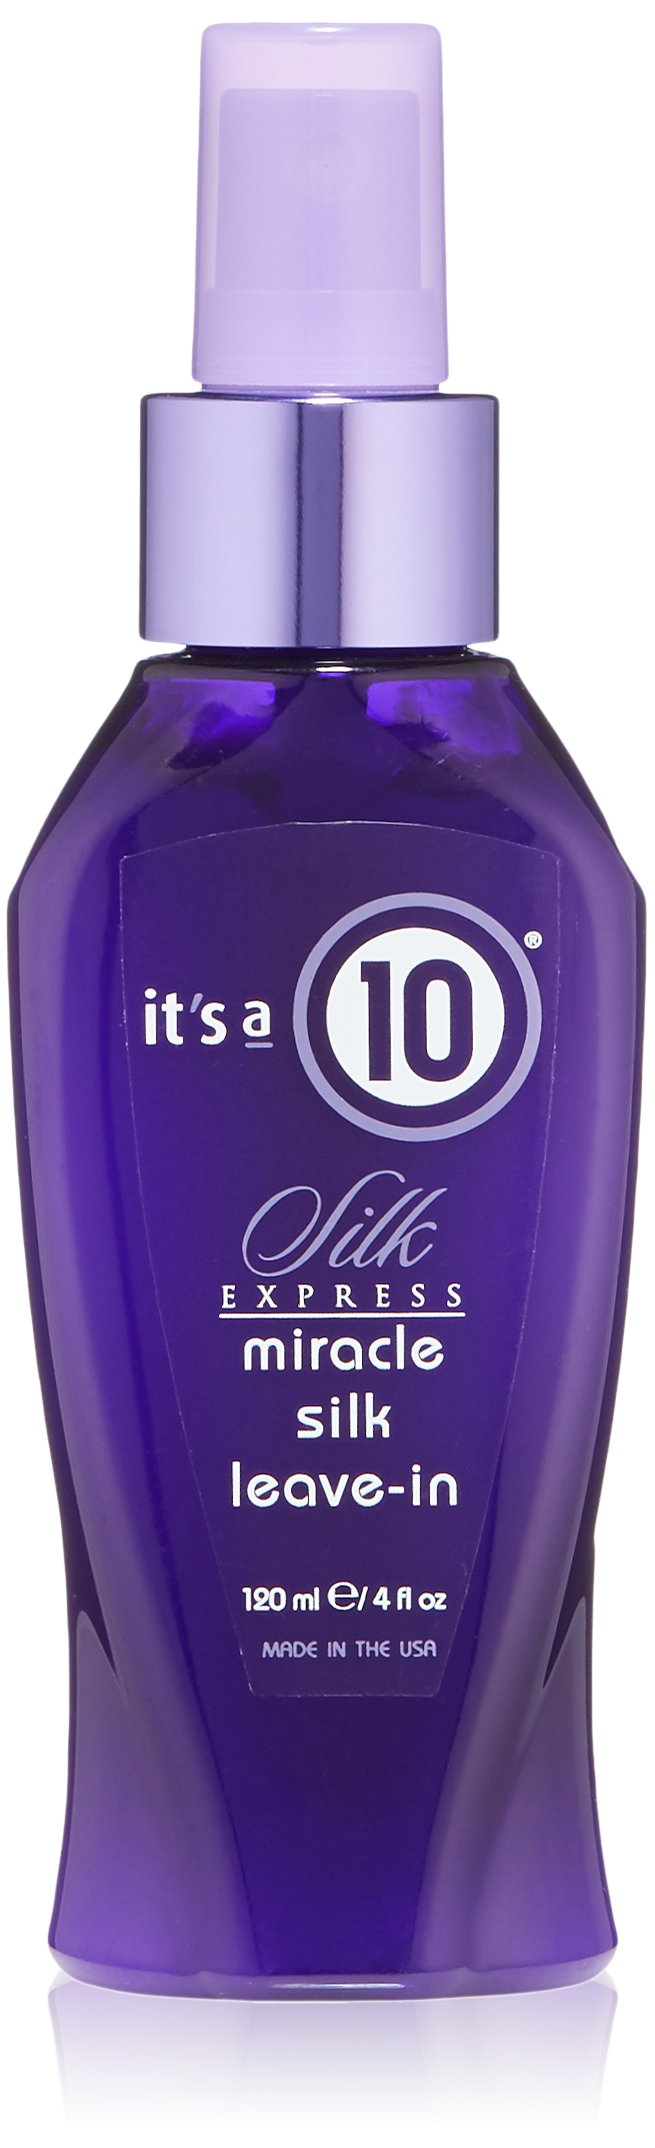 it 39 s a 10 silk express miracle leave in conditioner spray dry damaged hair 4 oz ebay. Black Bedroom Furniture Sets. Home Design Ideas